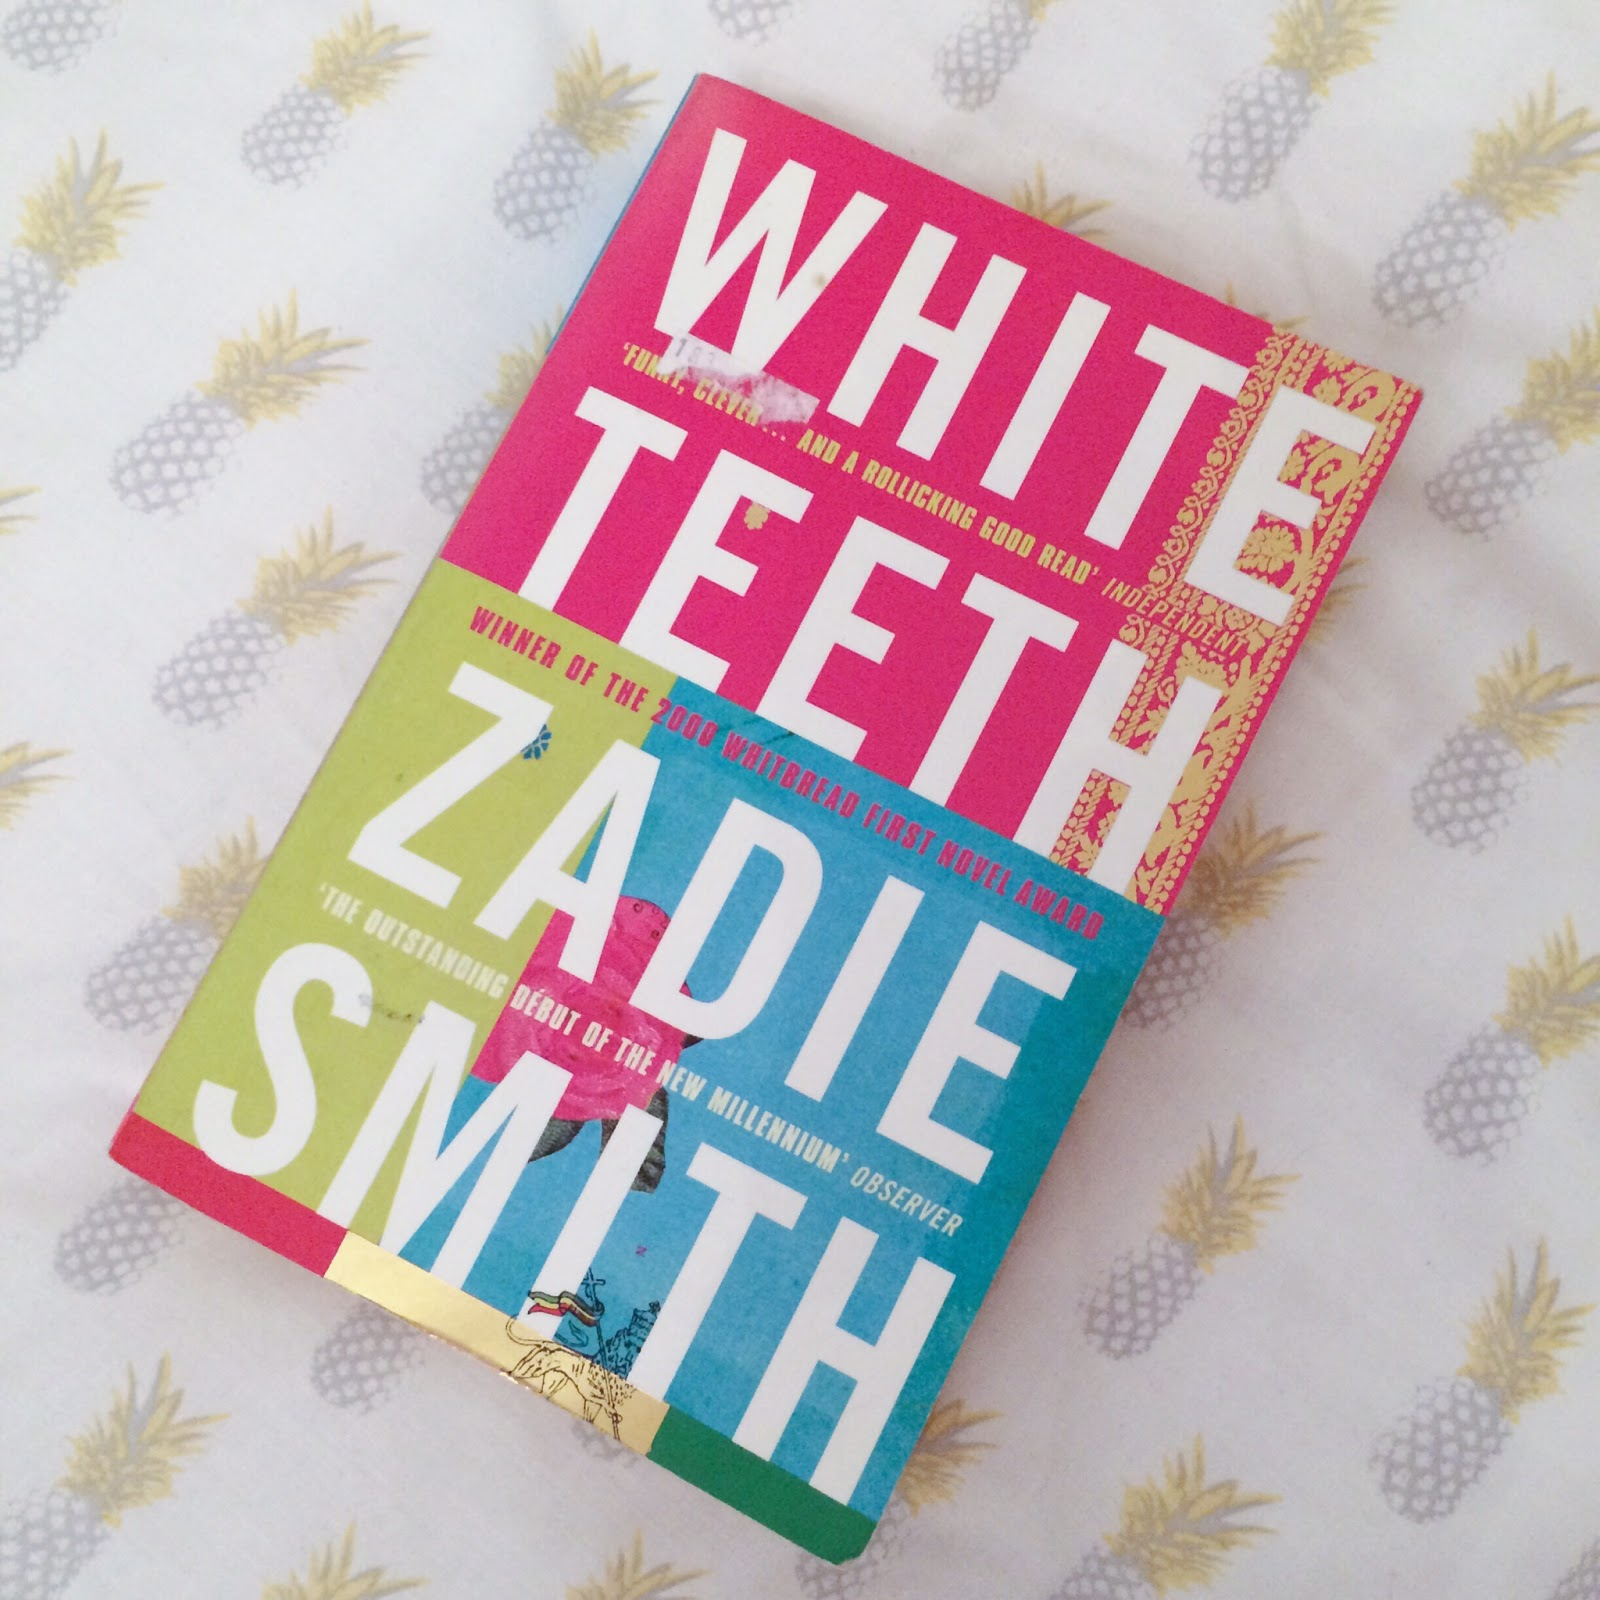 White Teeth Book Review